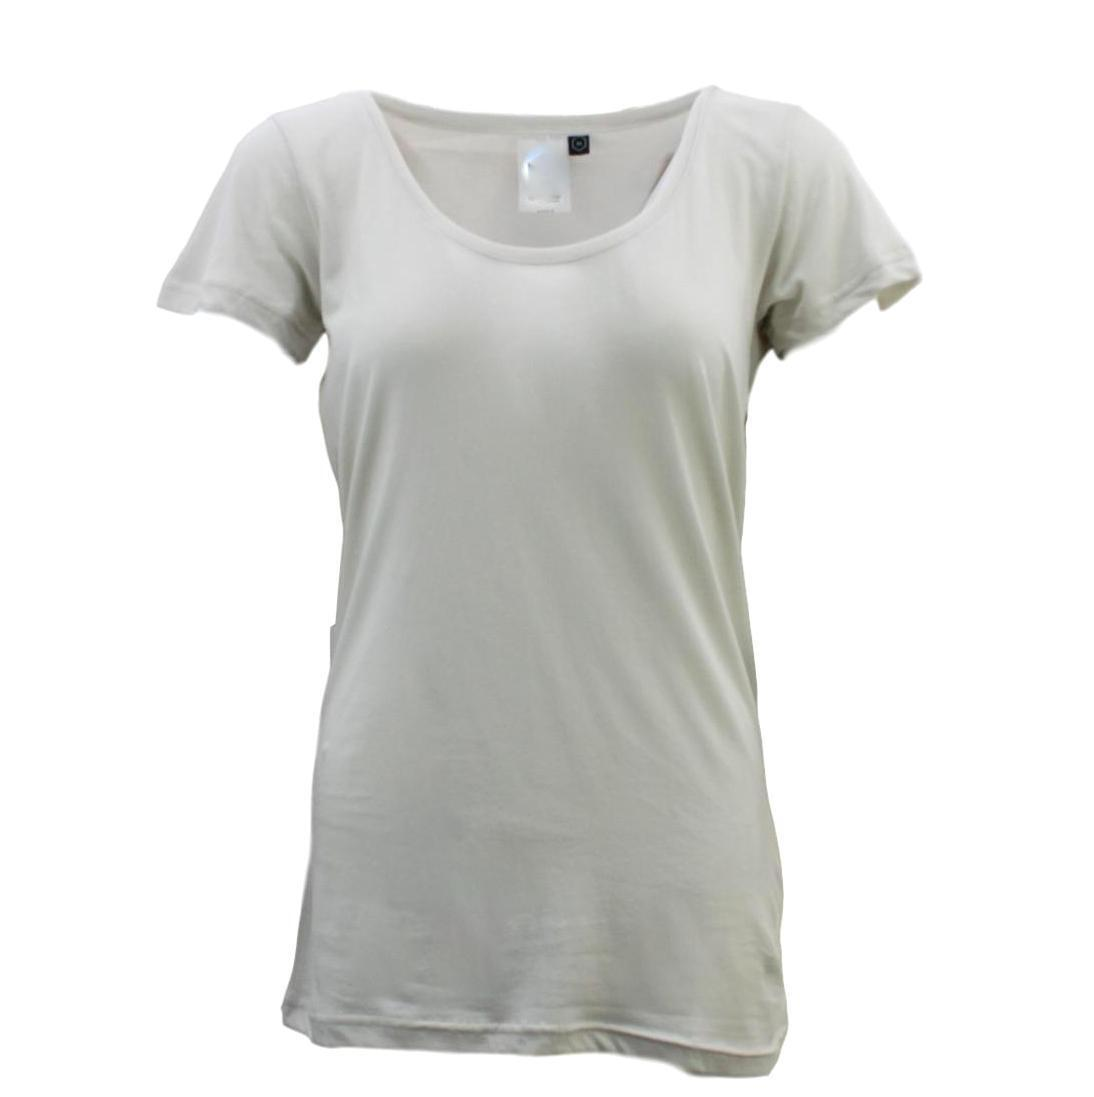 Women-039-s-100-Cotton-Basic-Tee-Scoop-U-Neck-Top-Casual-Short-Sleeve-T-Shirt thumbnail 15